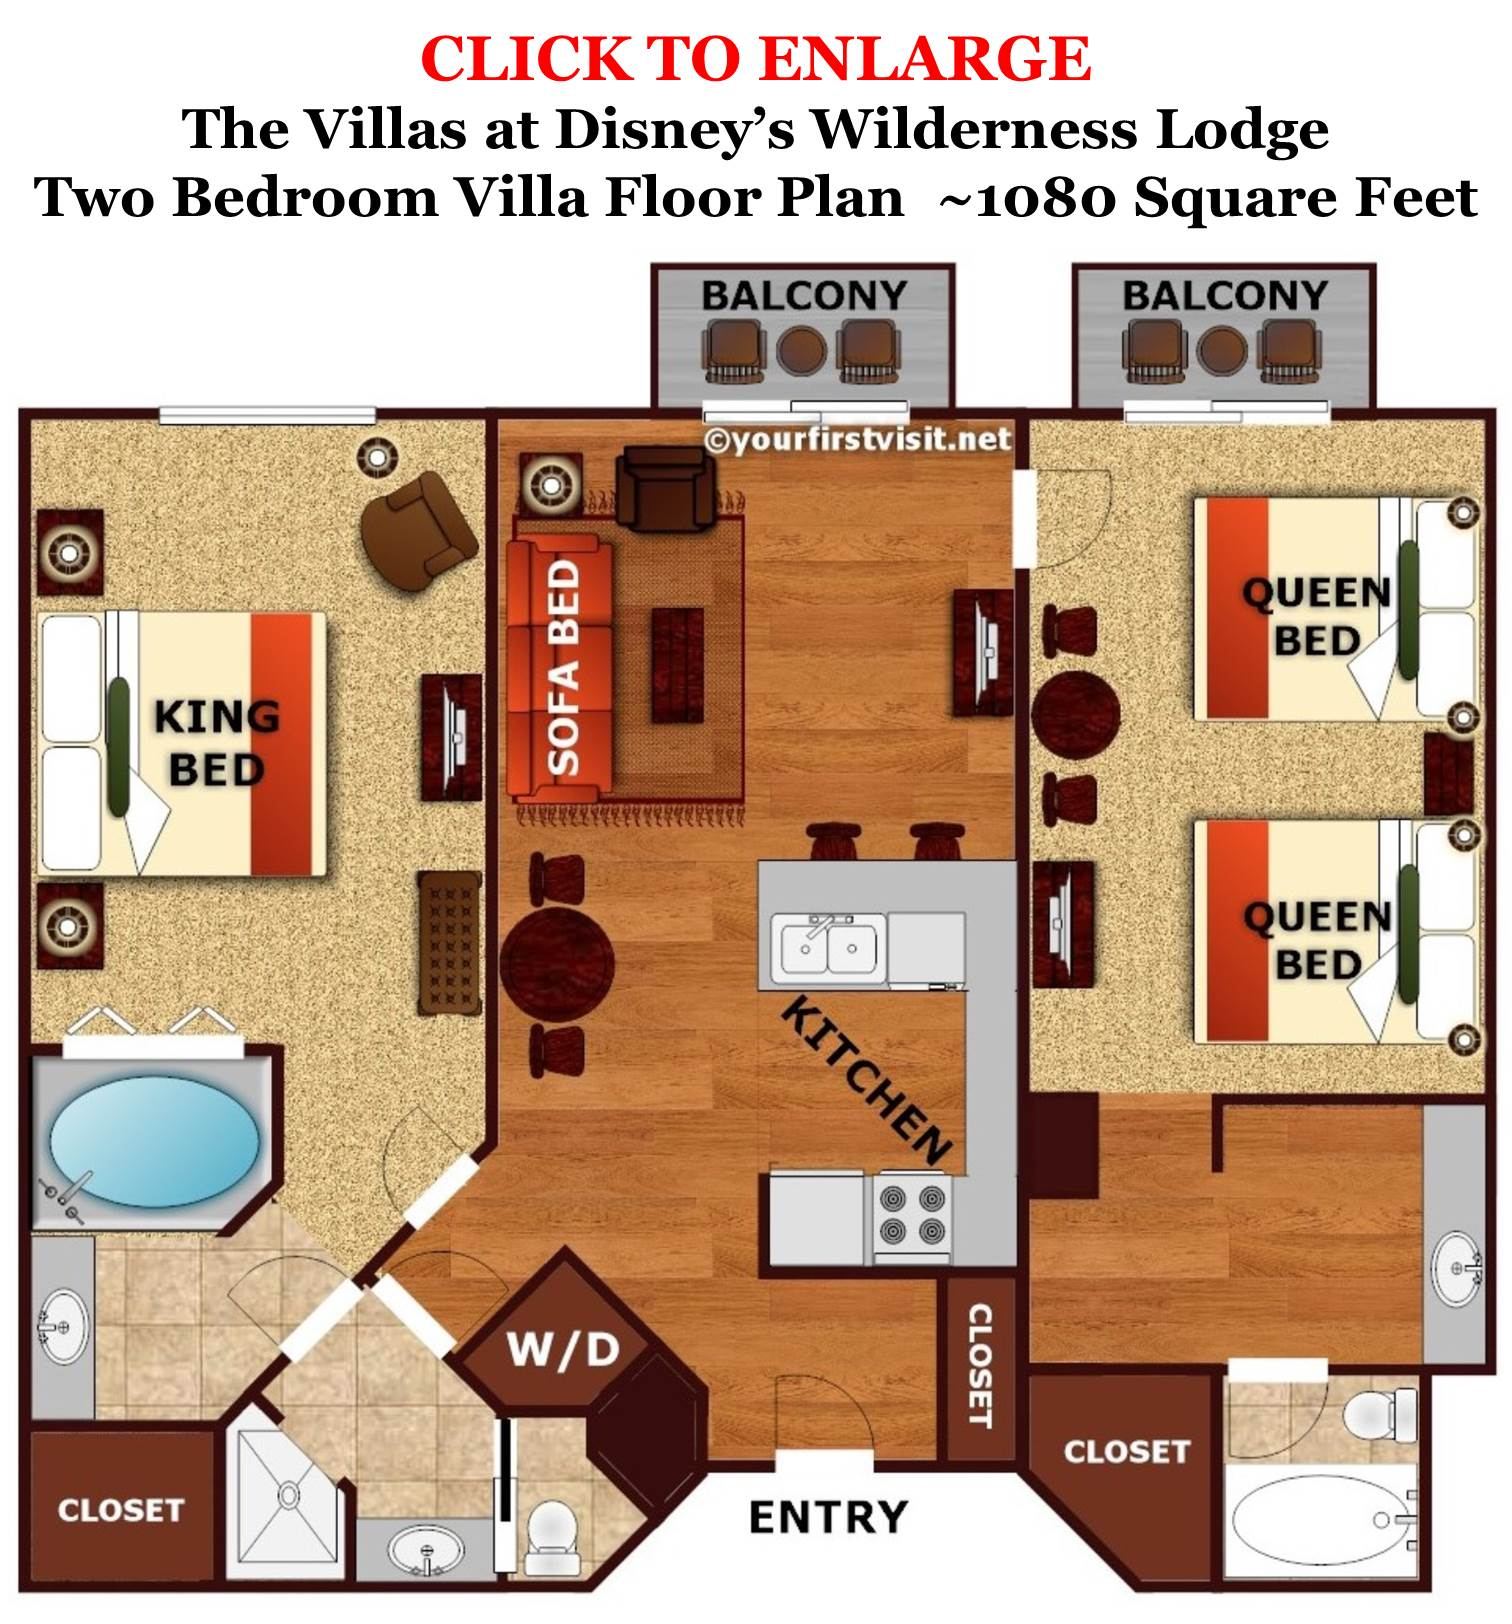 Large family deluxe options at walt disney world - 2 bedroom villas near disney world ...